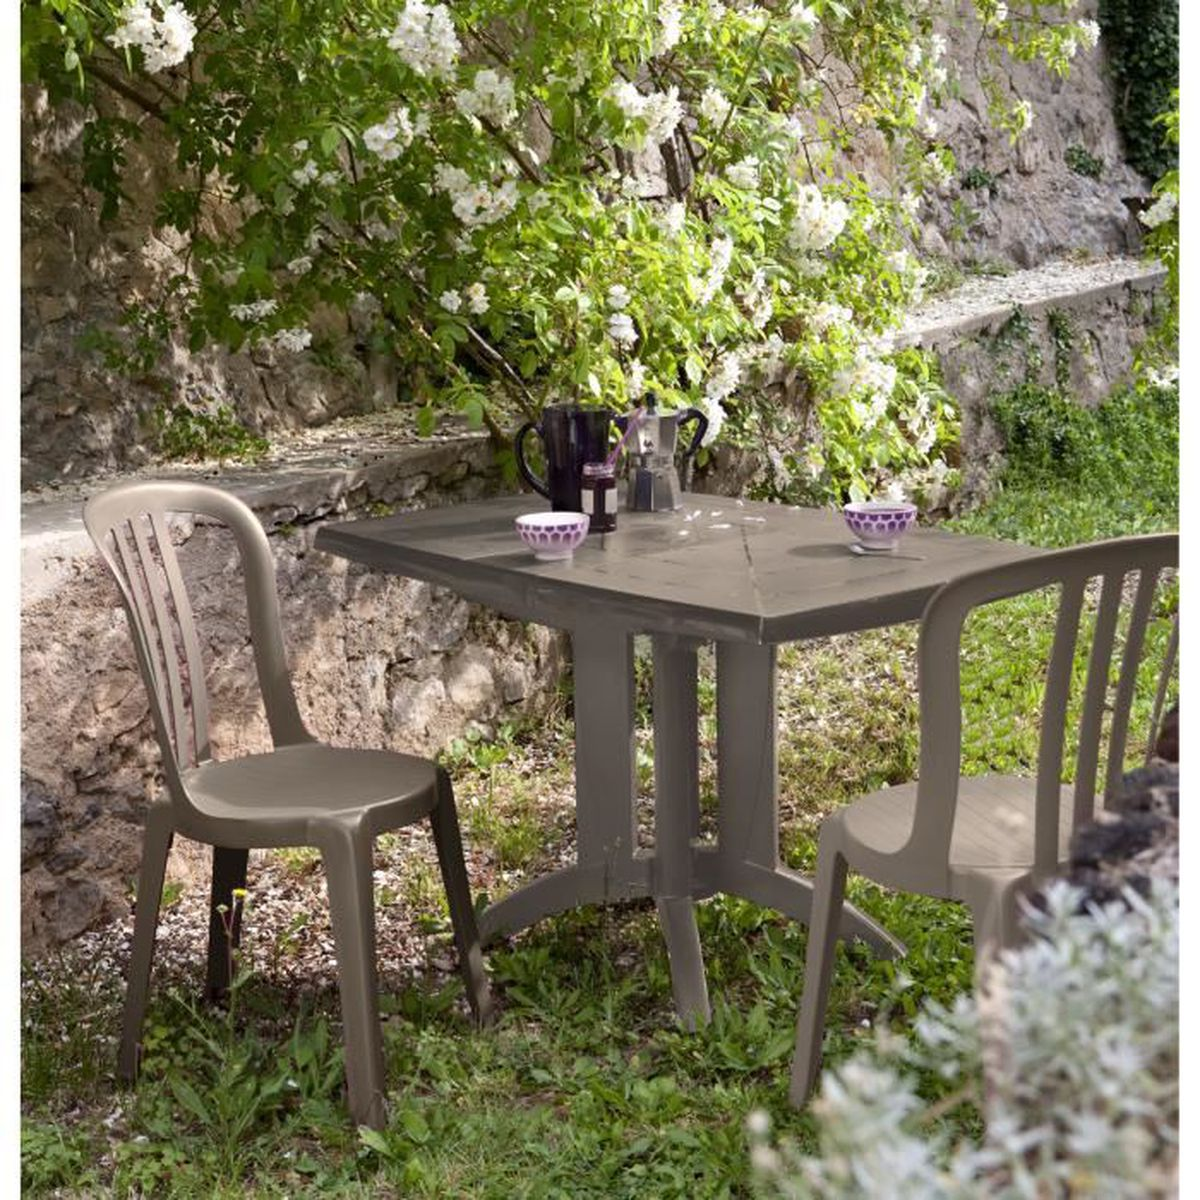 Salon de jardin: Table VEGA taupe + 2 chaises MIAMI Bistrot taupe